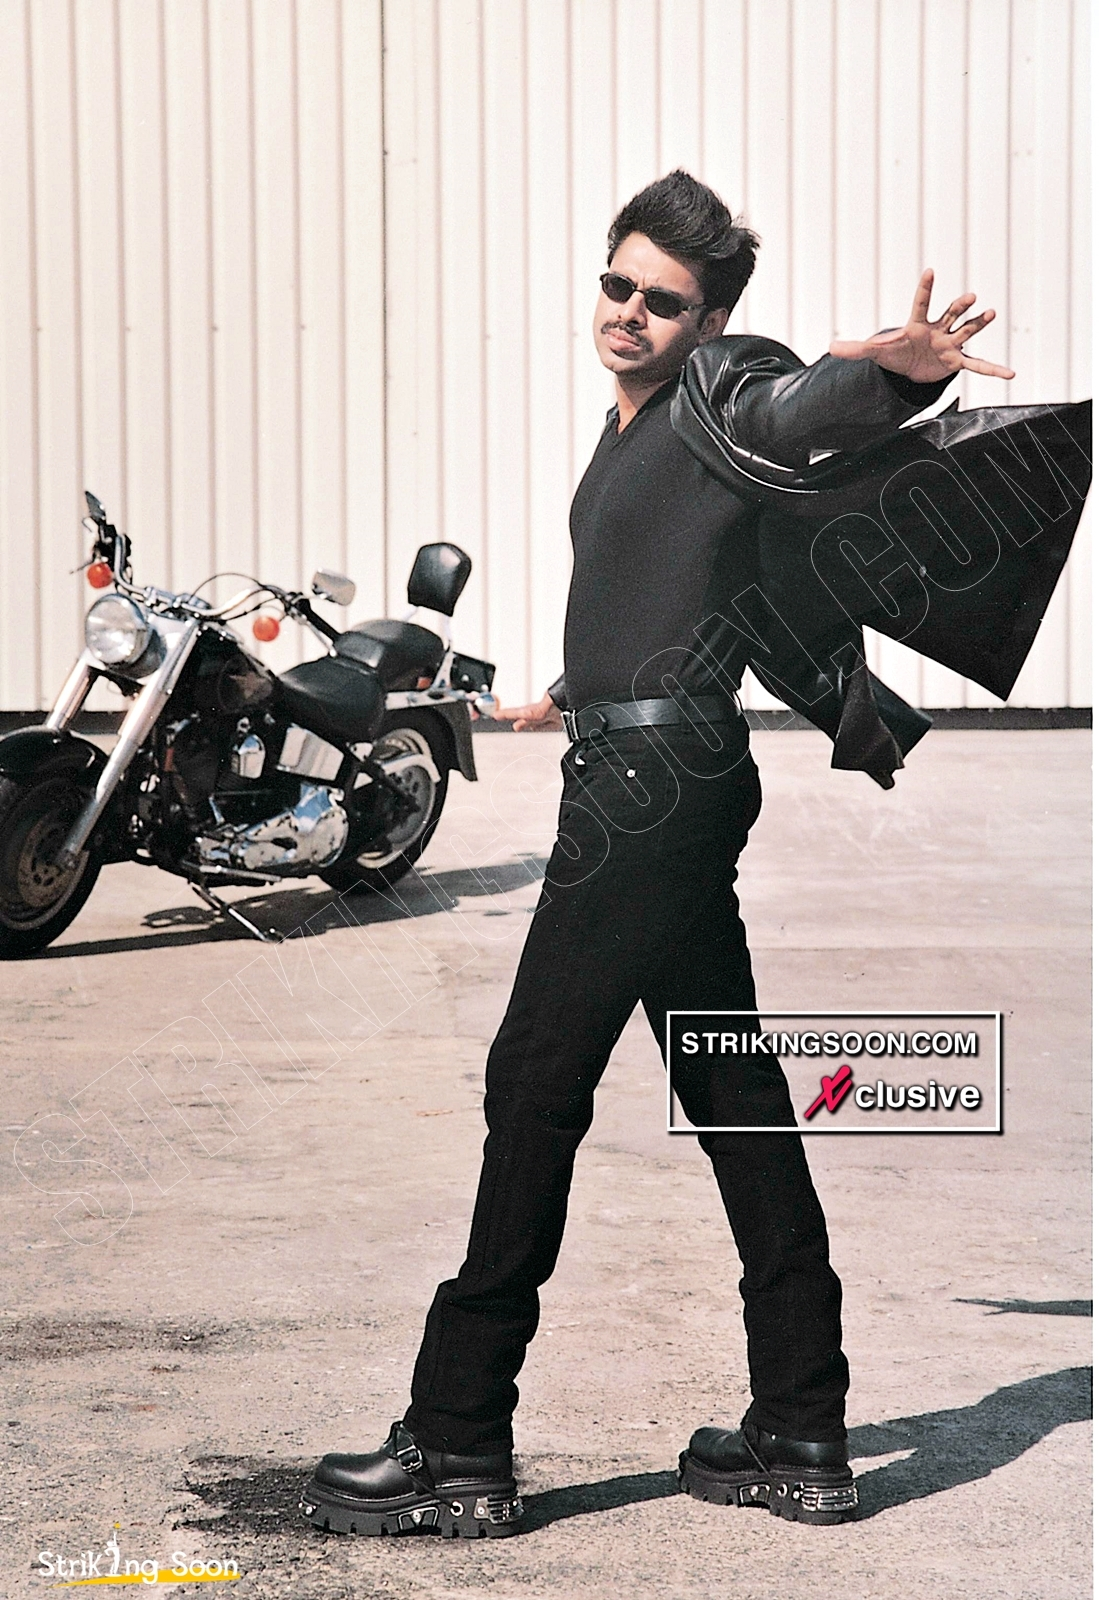 Badri Movie Images With Quotes: StrikingSoon.com: Unseen